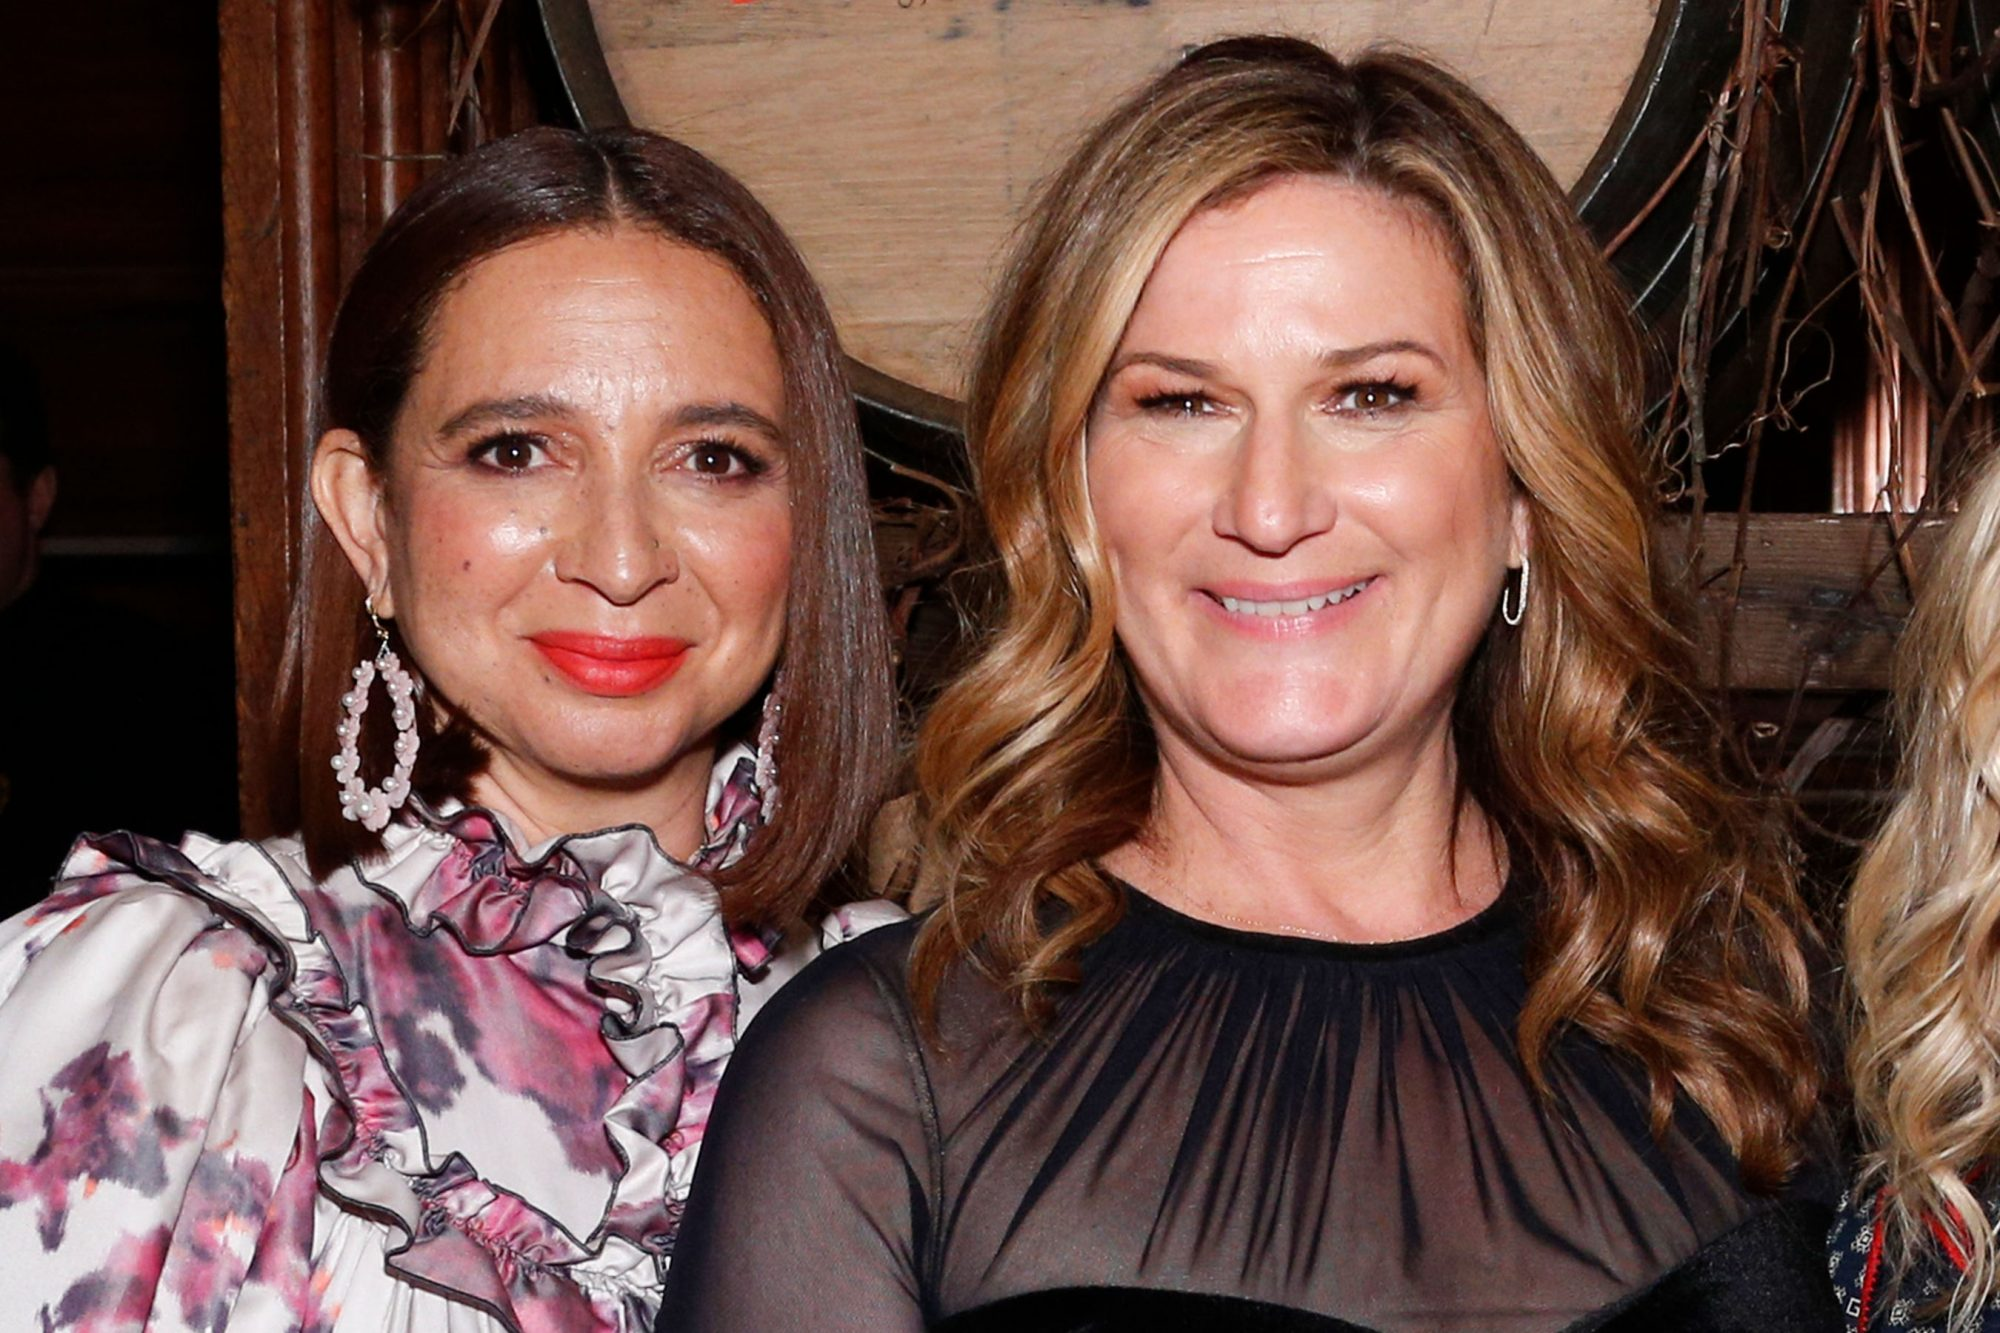 Maya Rudolph and Ana Gasteyer